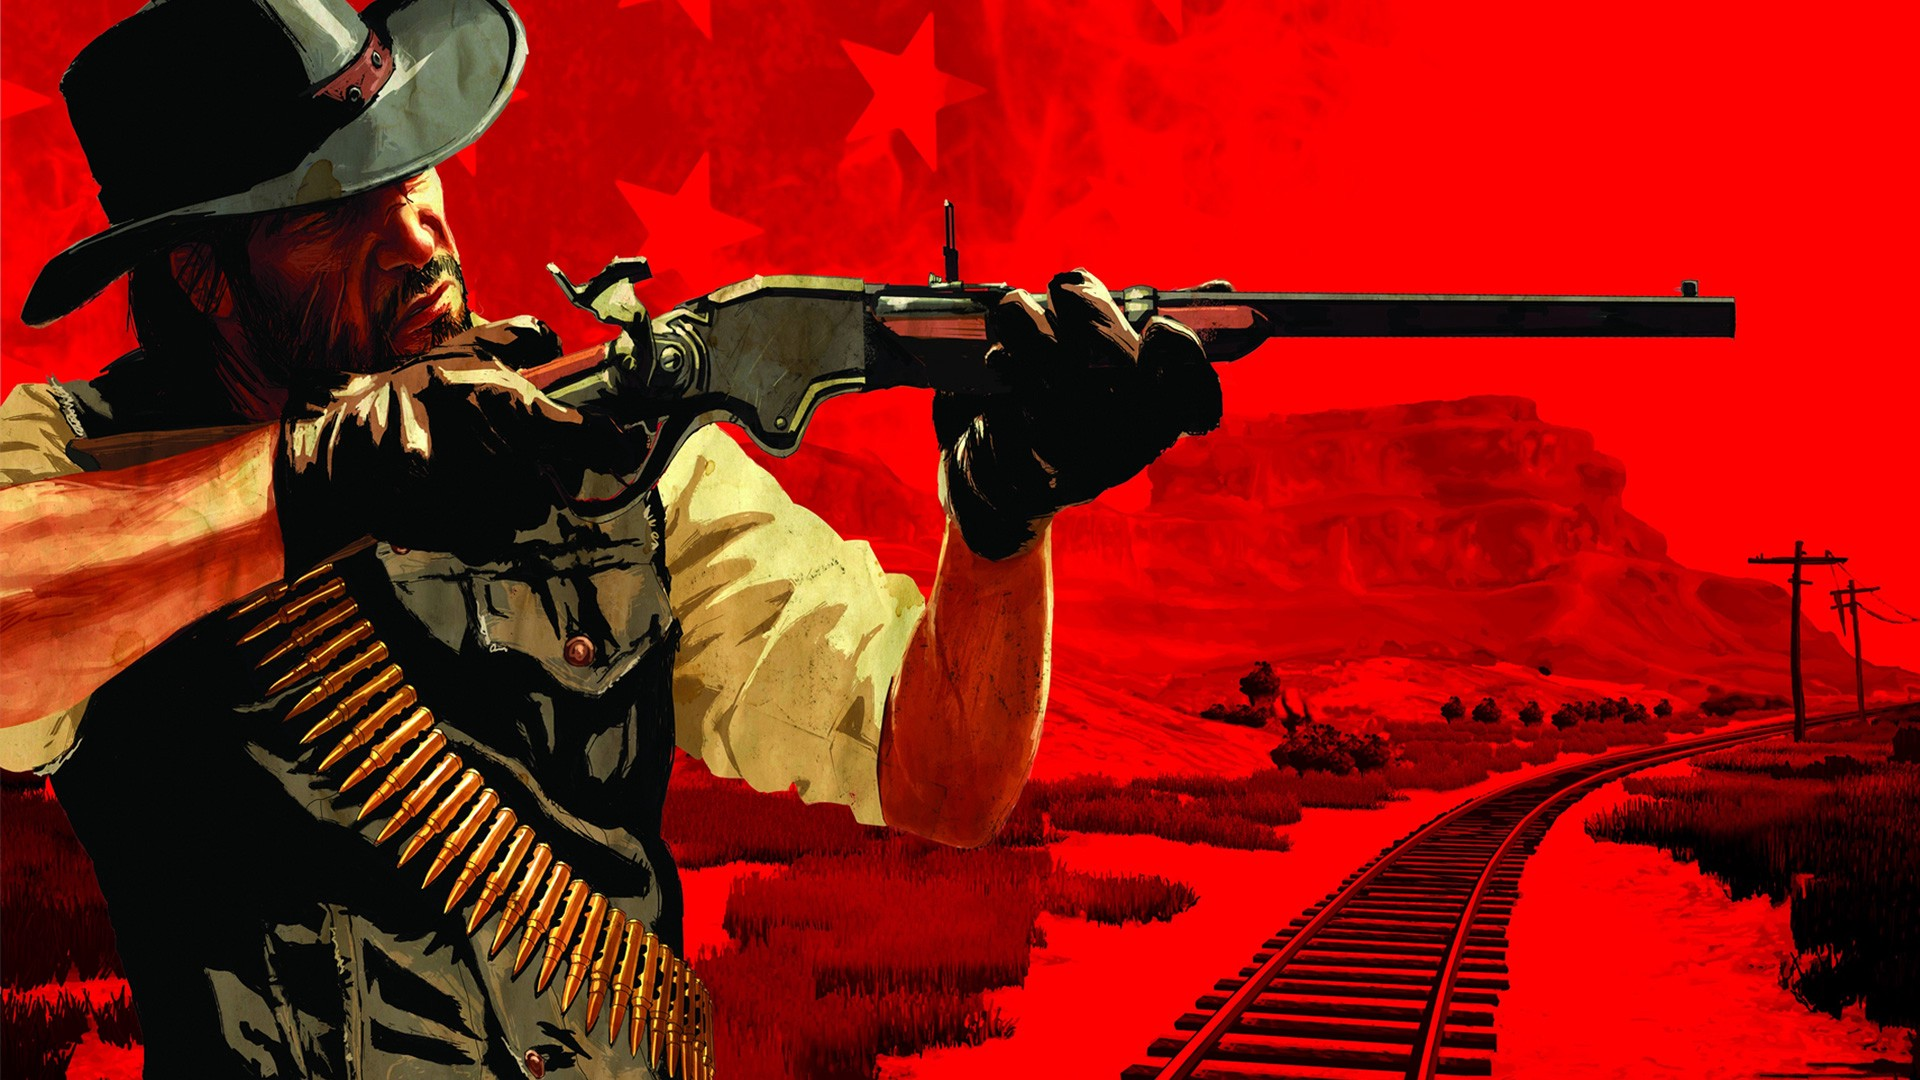 Revisiting Red Dead Redemption A Work Of Art John Reeves